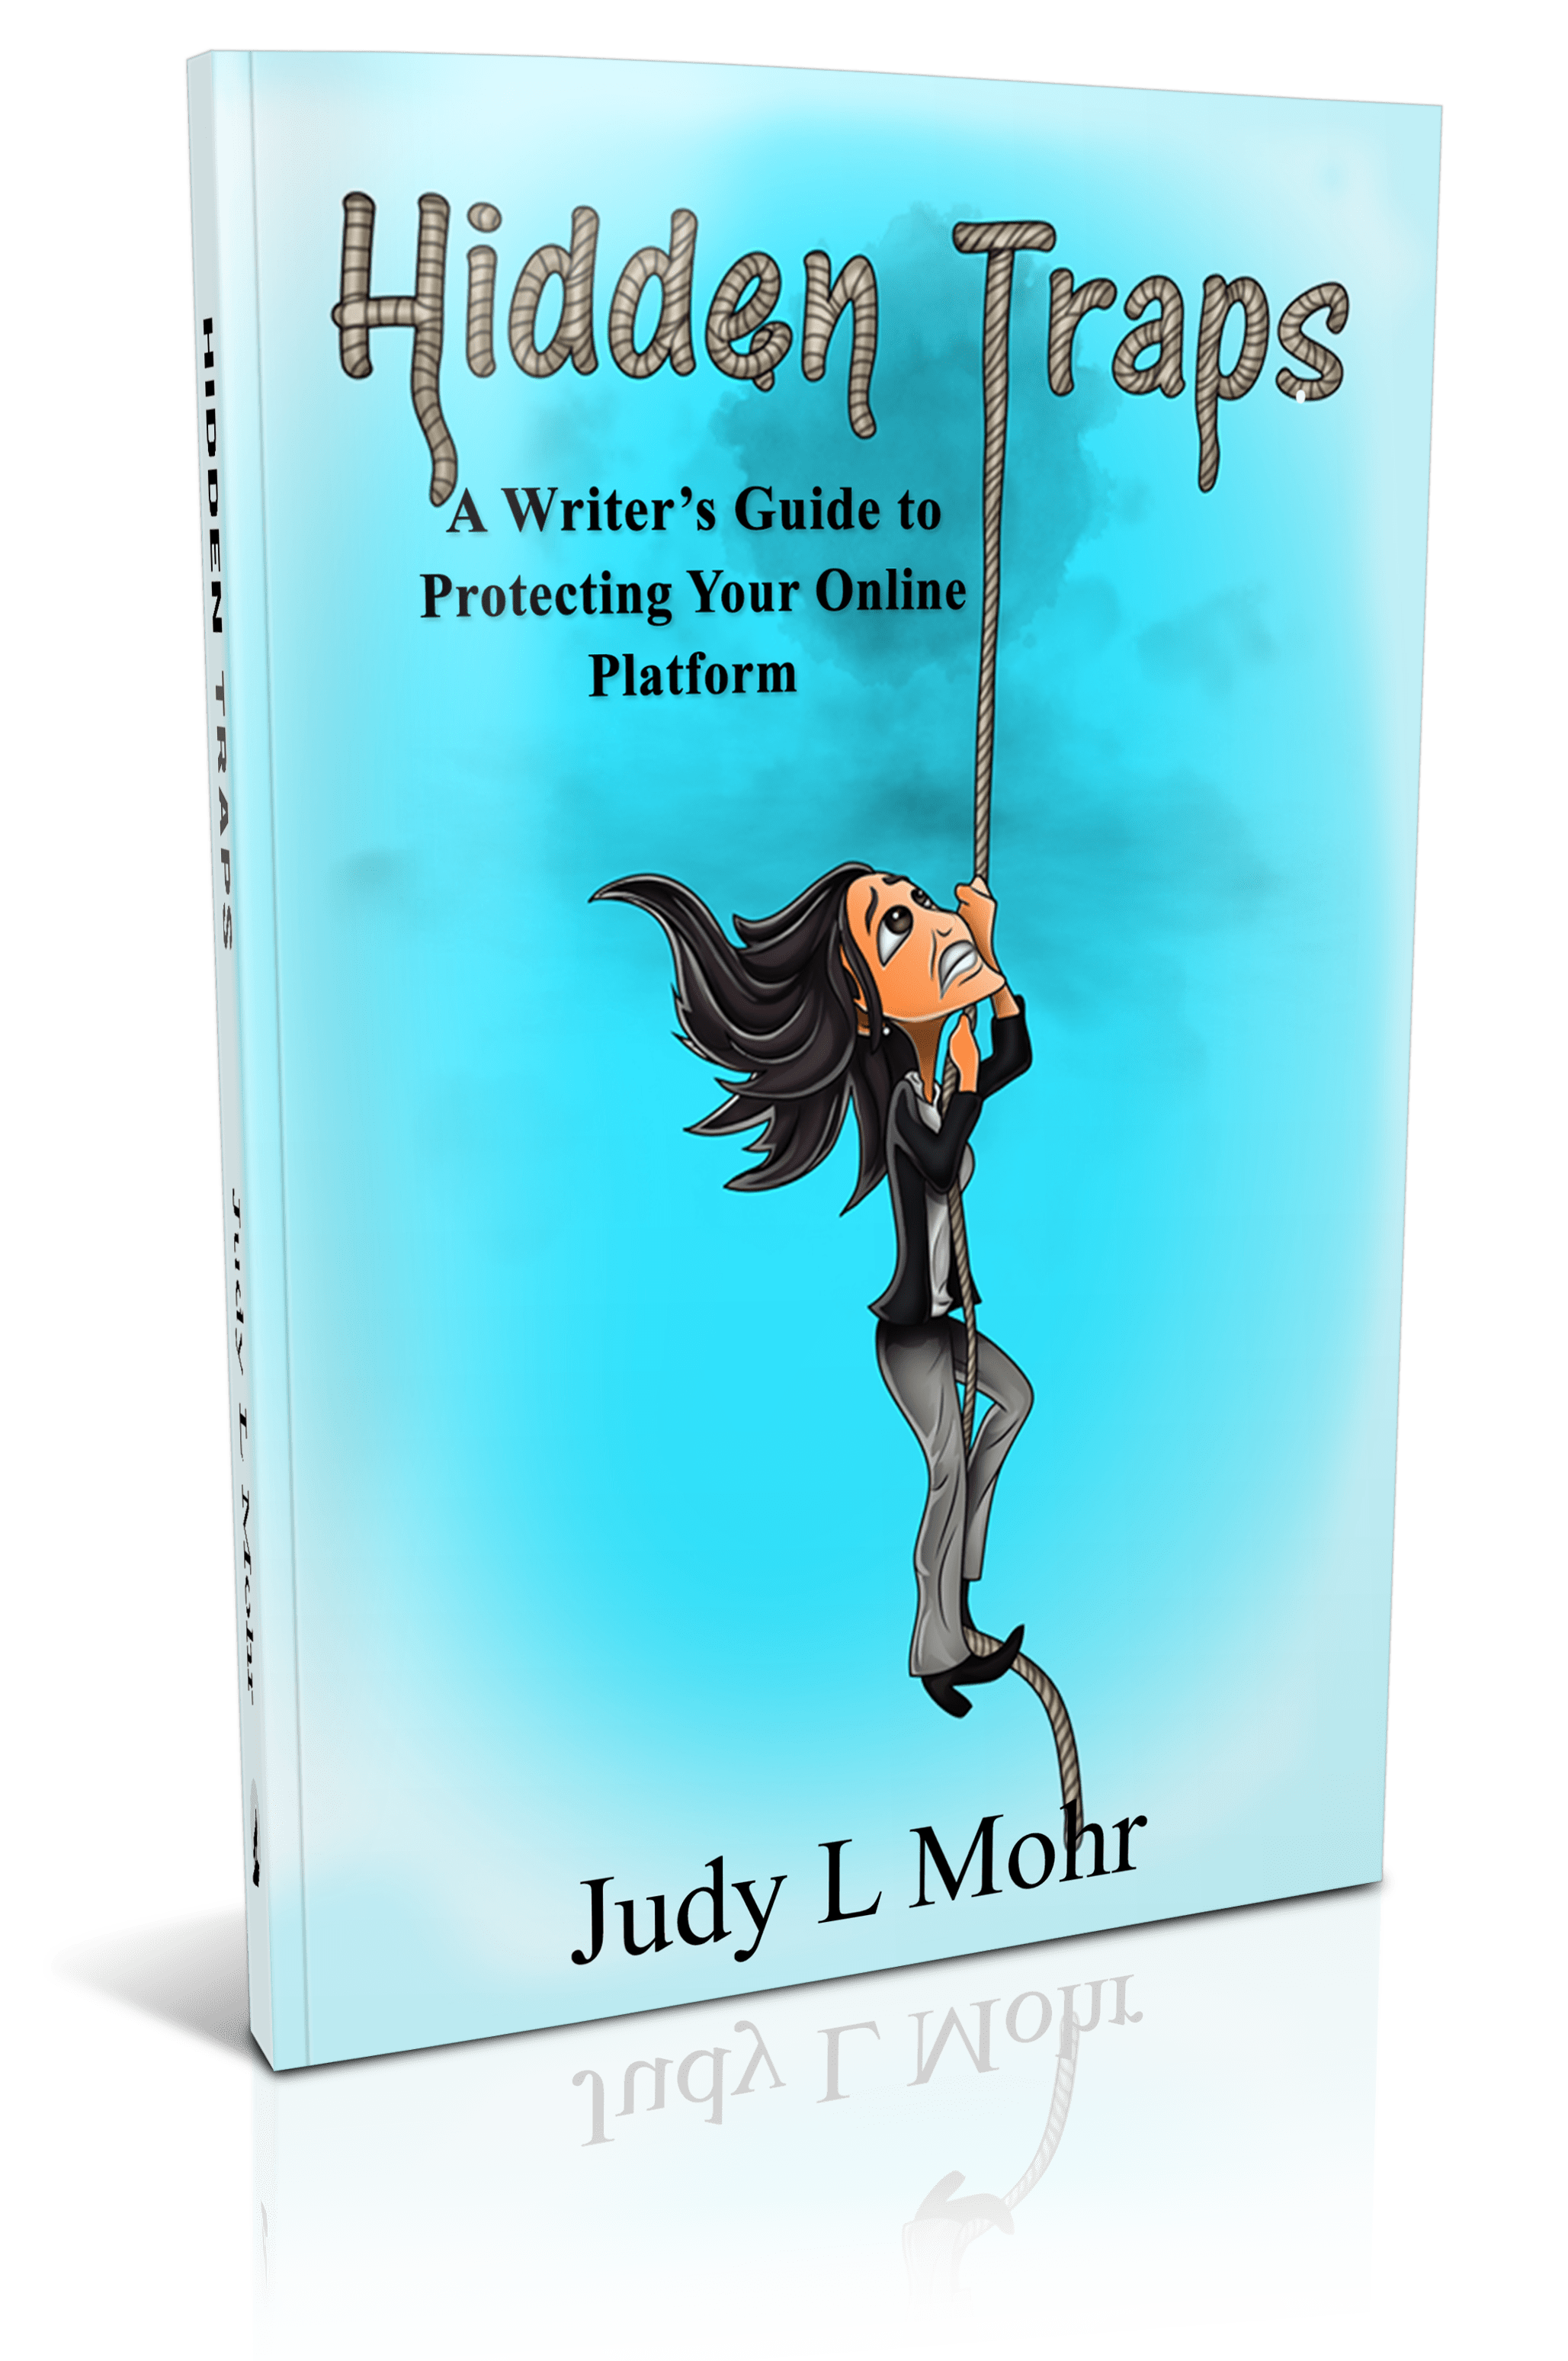 Hidden Traps by Judy L Mohr